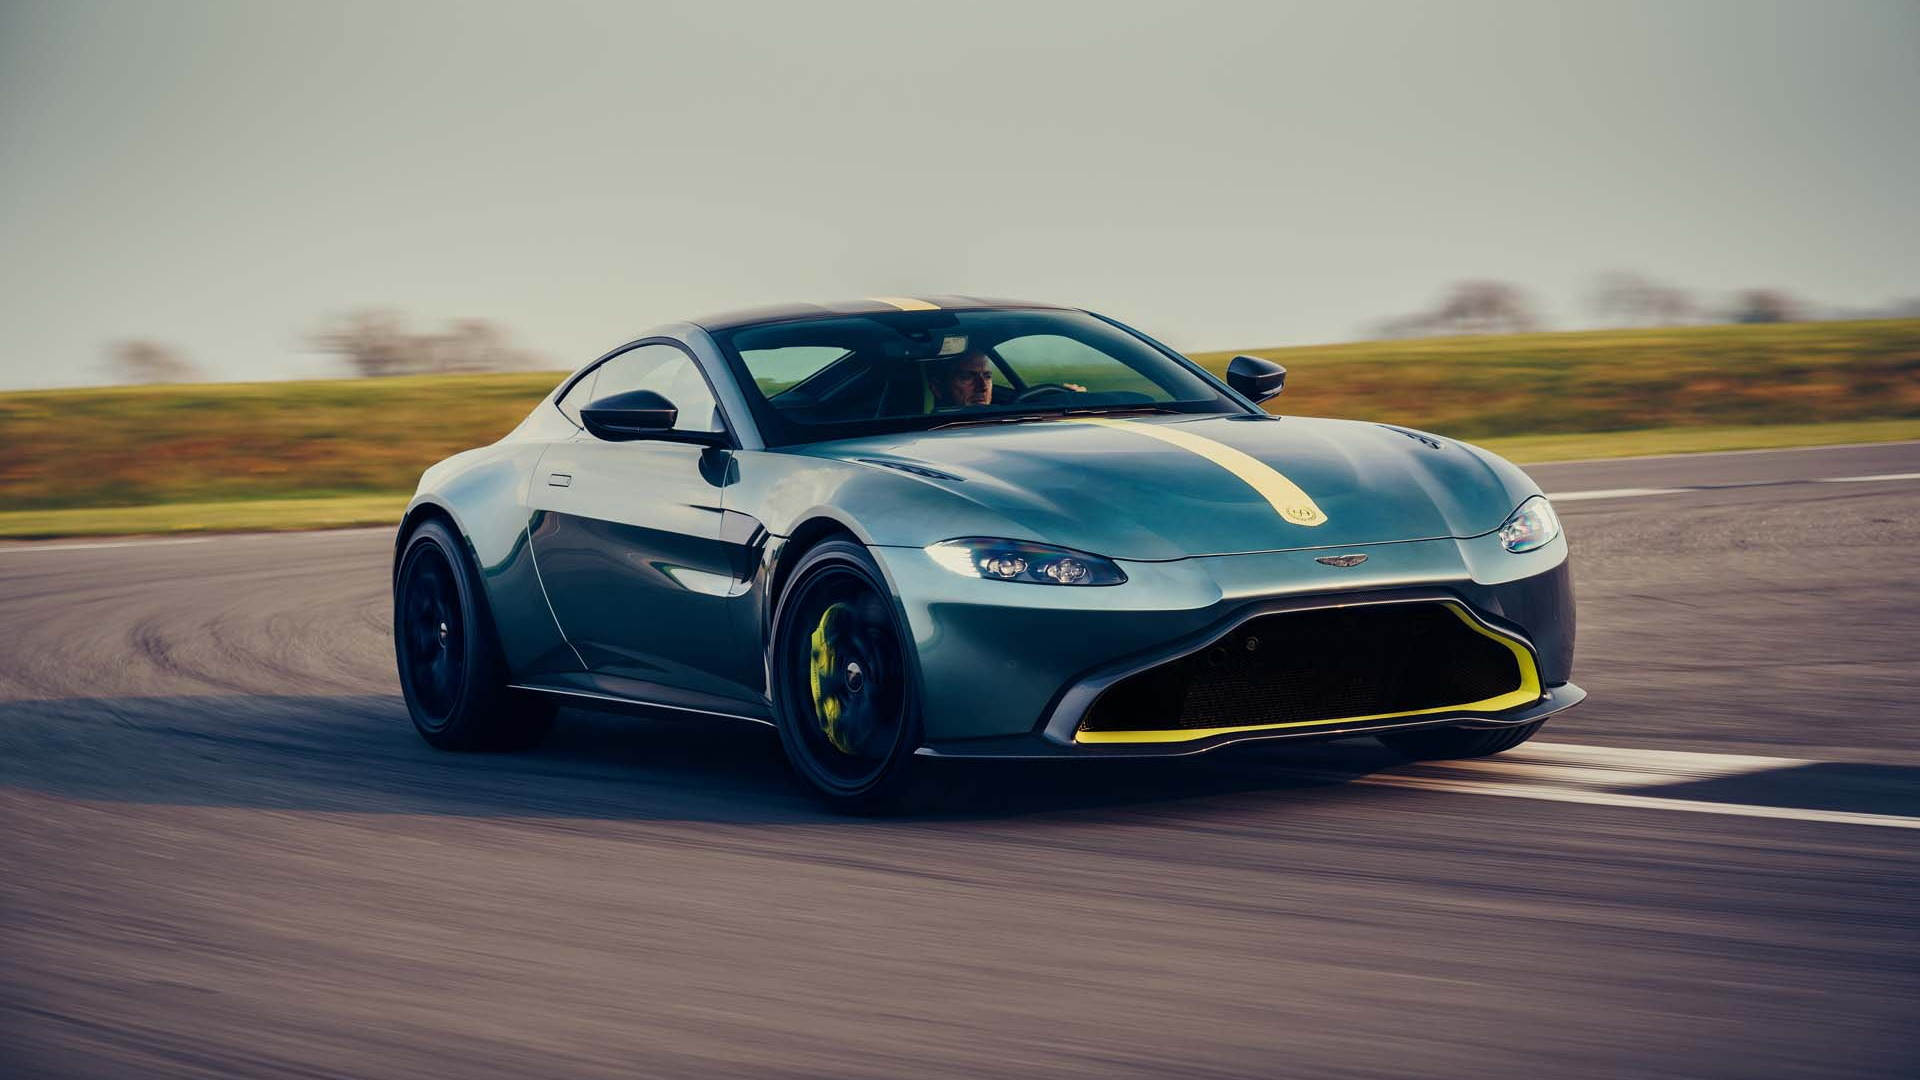 Aston Martin going hyper-limited with Vantage special editions